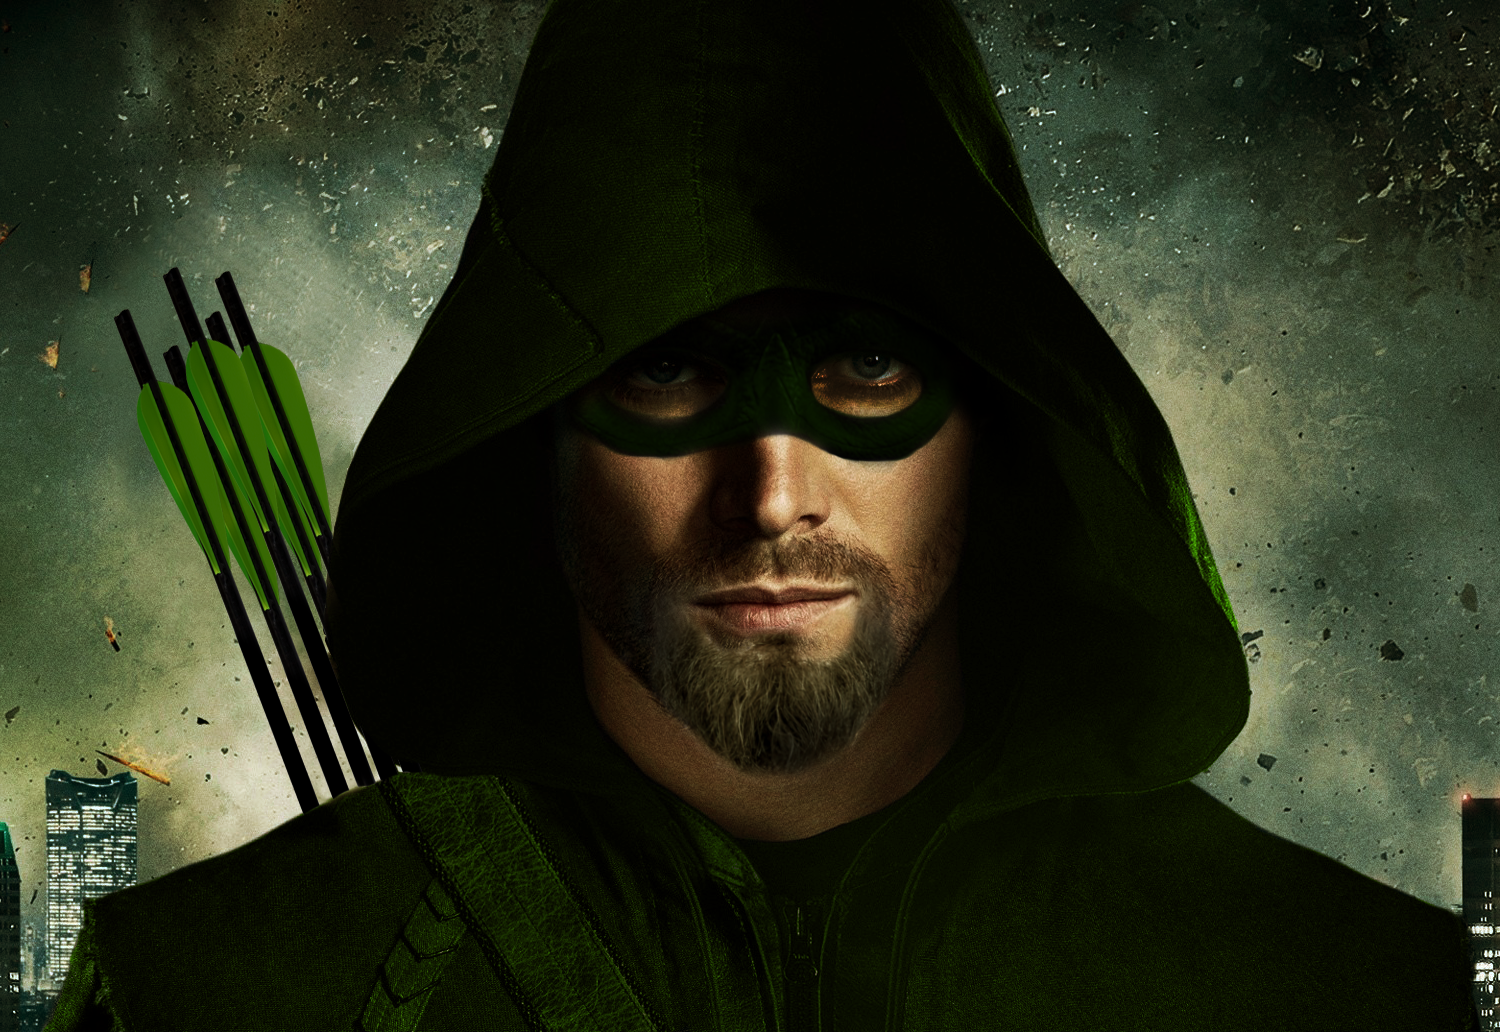 Green Arrow Poster For Season 4 Of By PreSlice